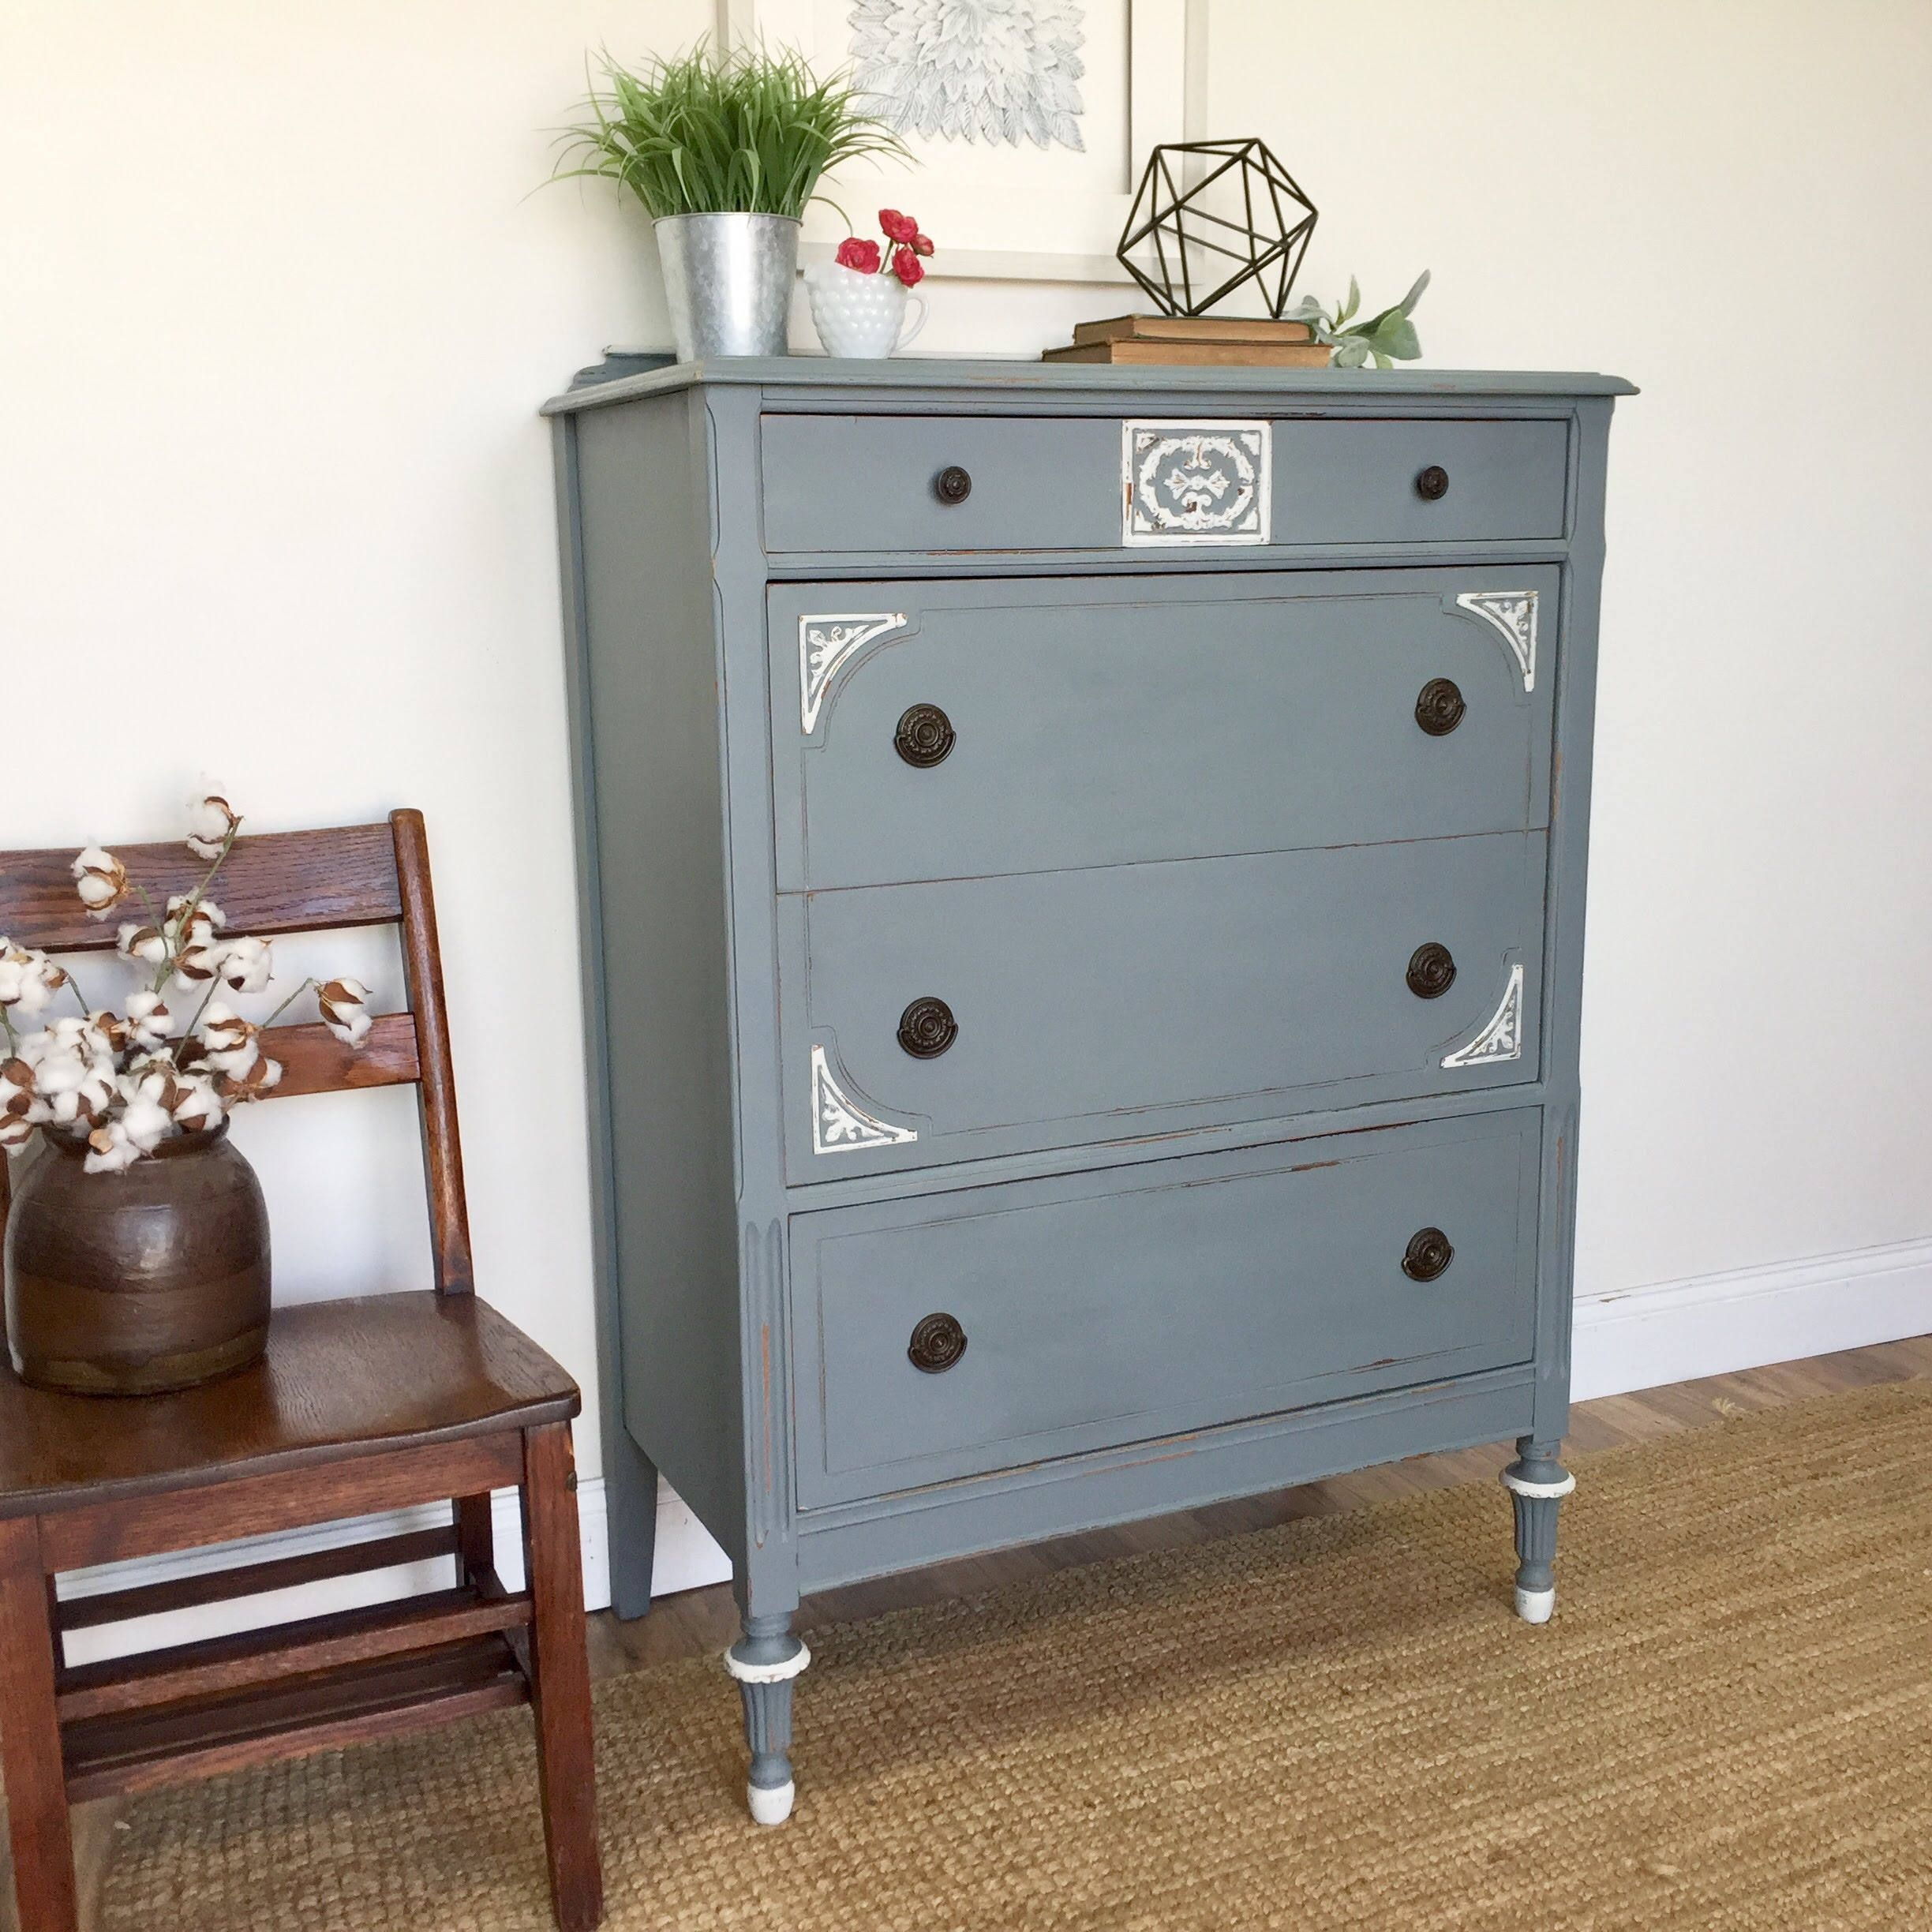 Tall Chest of Drawers Distressed Furniture